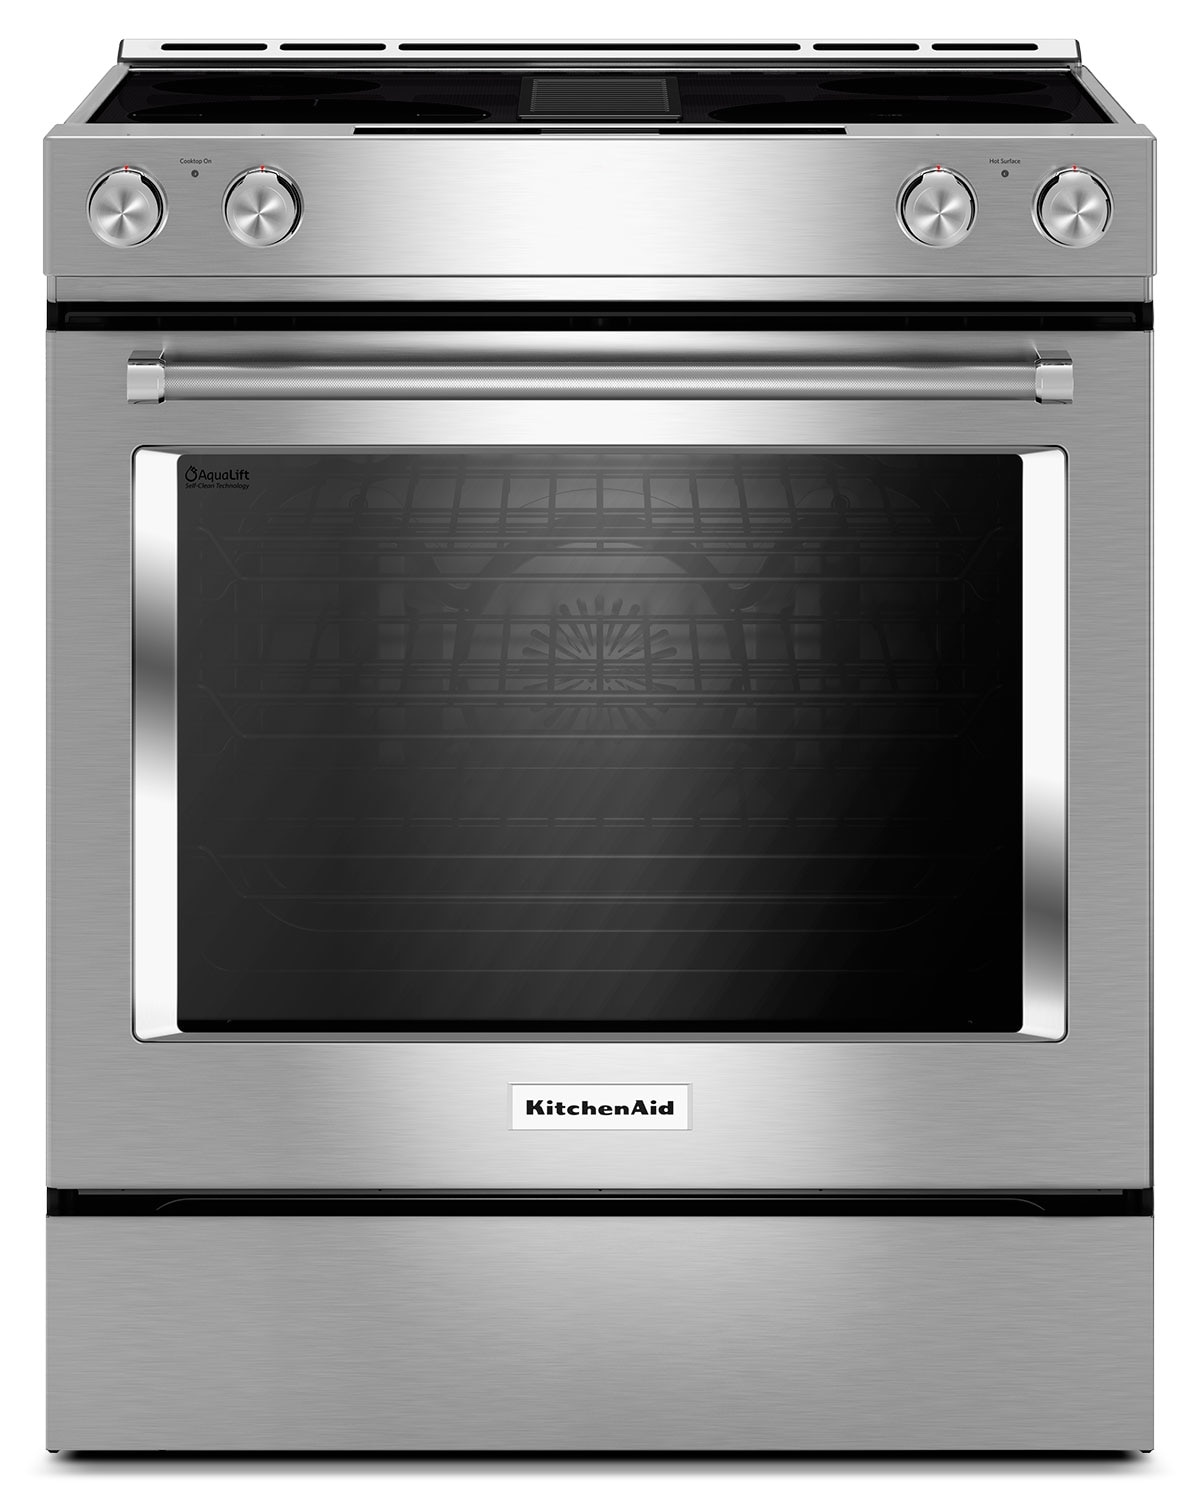 KitchenAid Stainless Steel Slide-In Electric Convection Range (6.4 Cu. Ft.) - KSEG950ESS